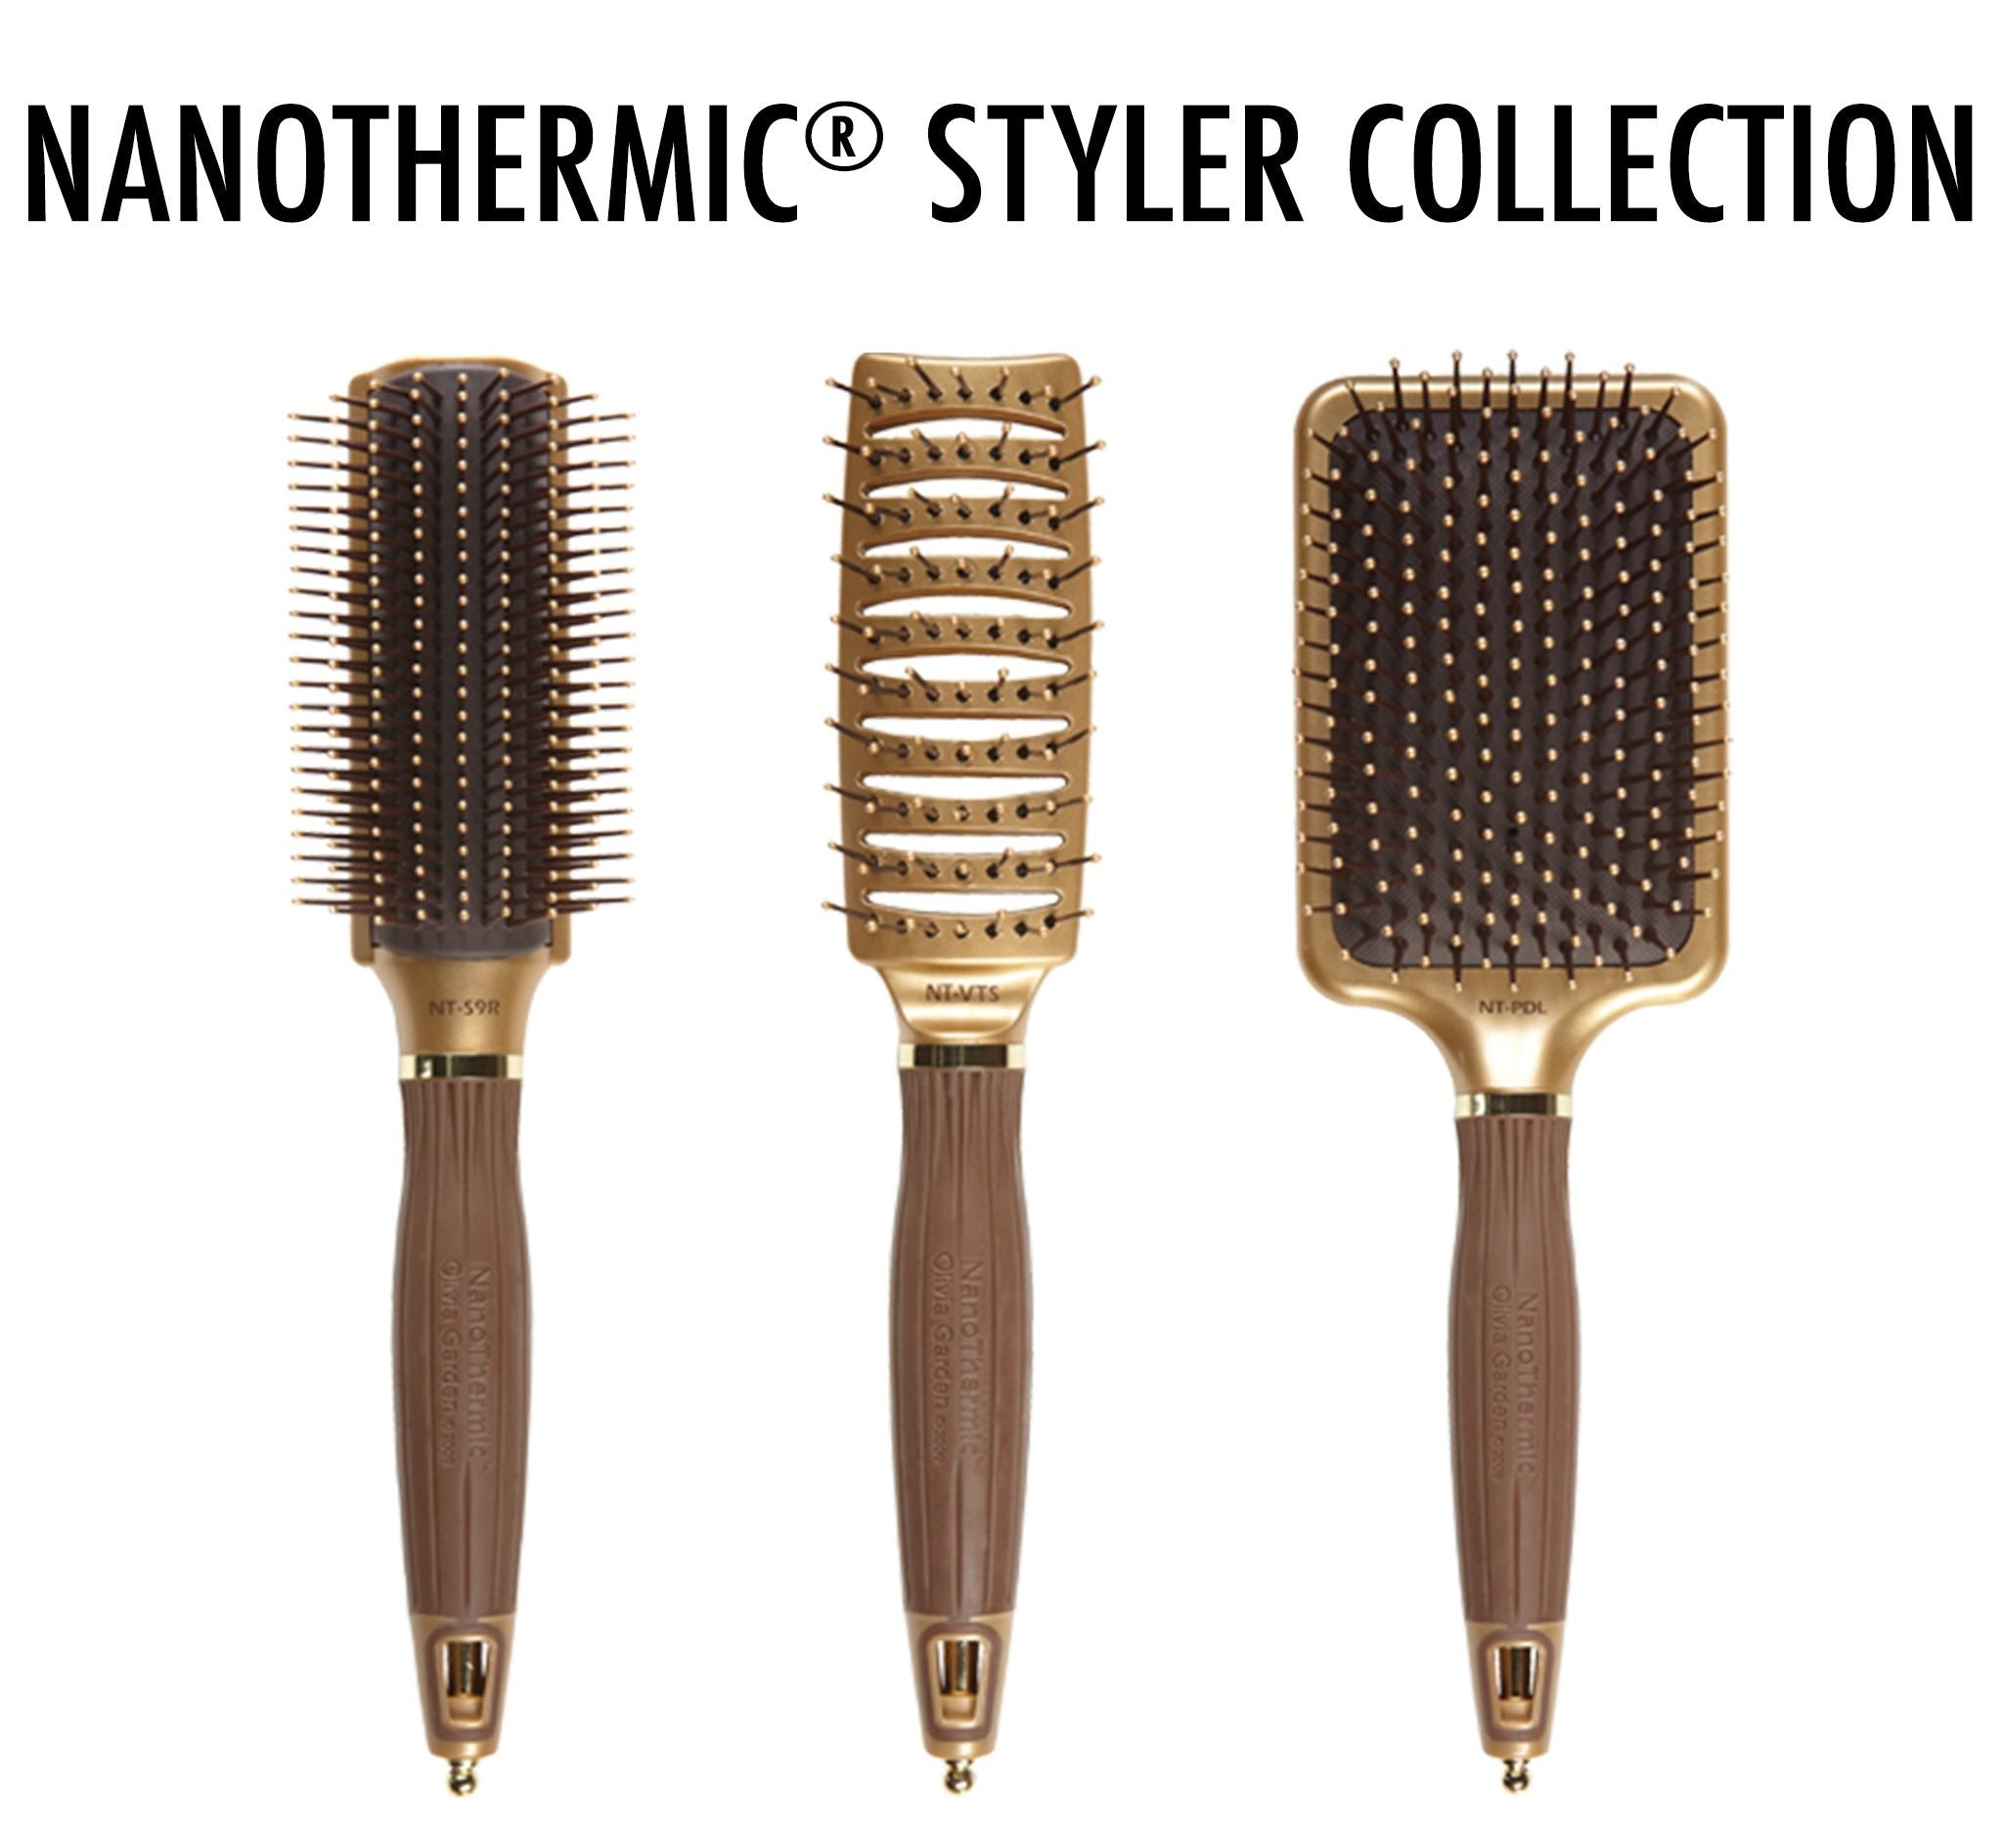 NanoThermic® Styler Collection